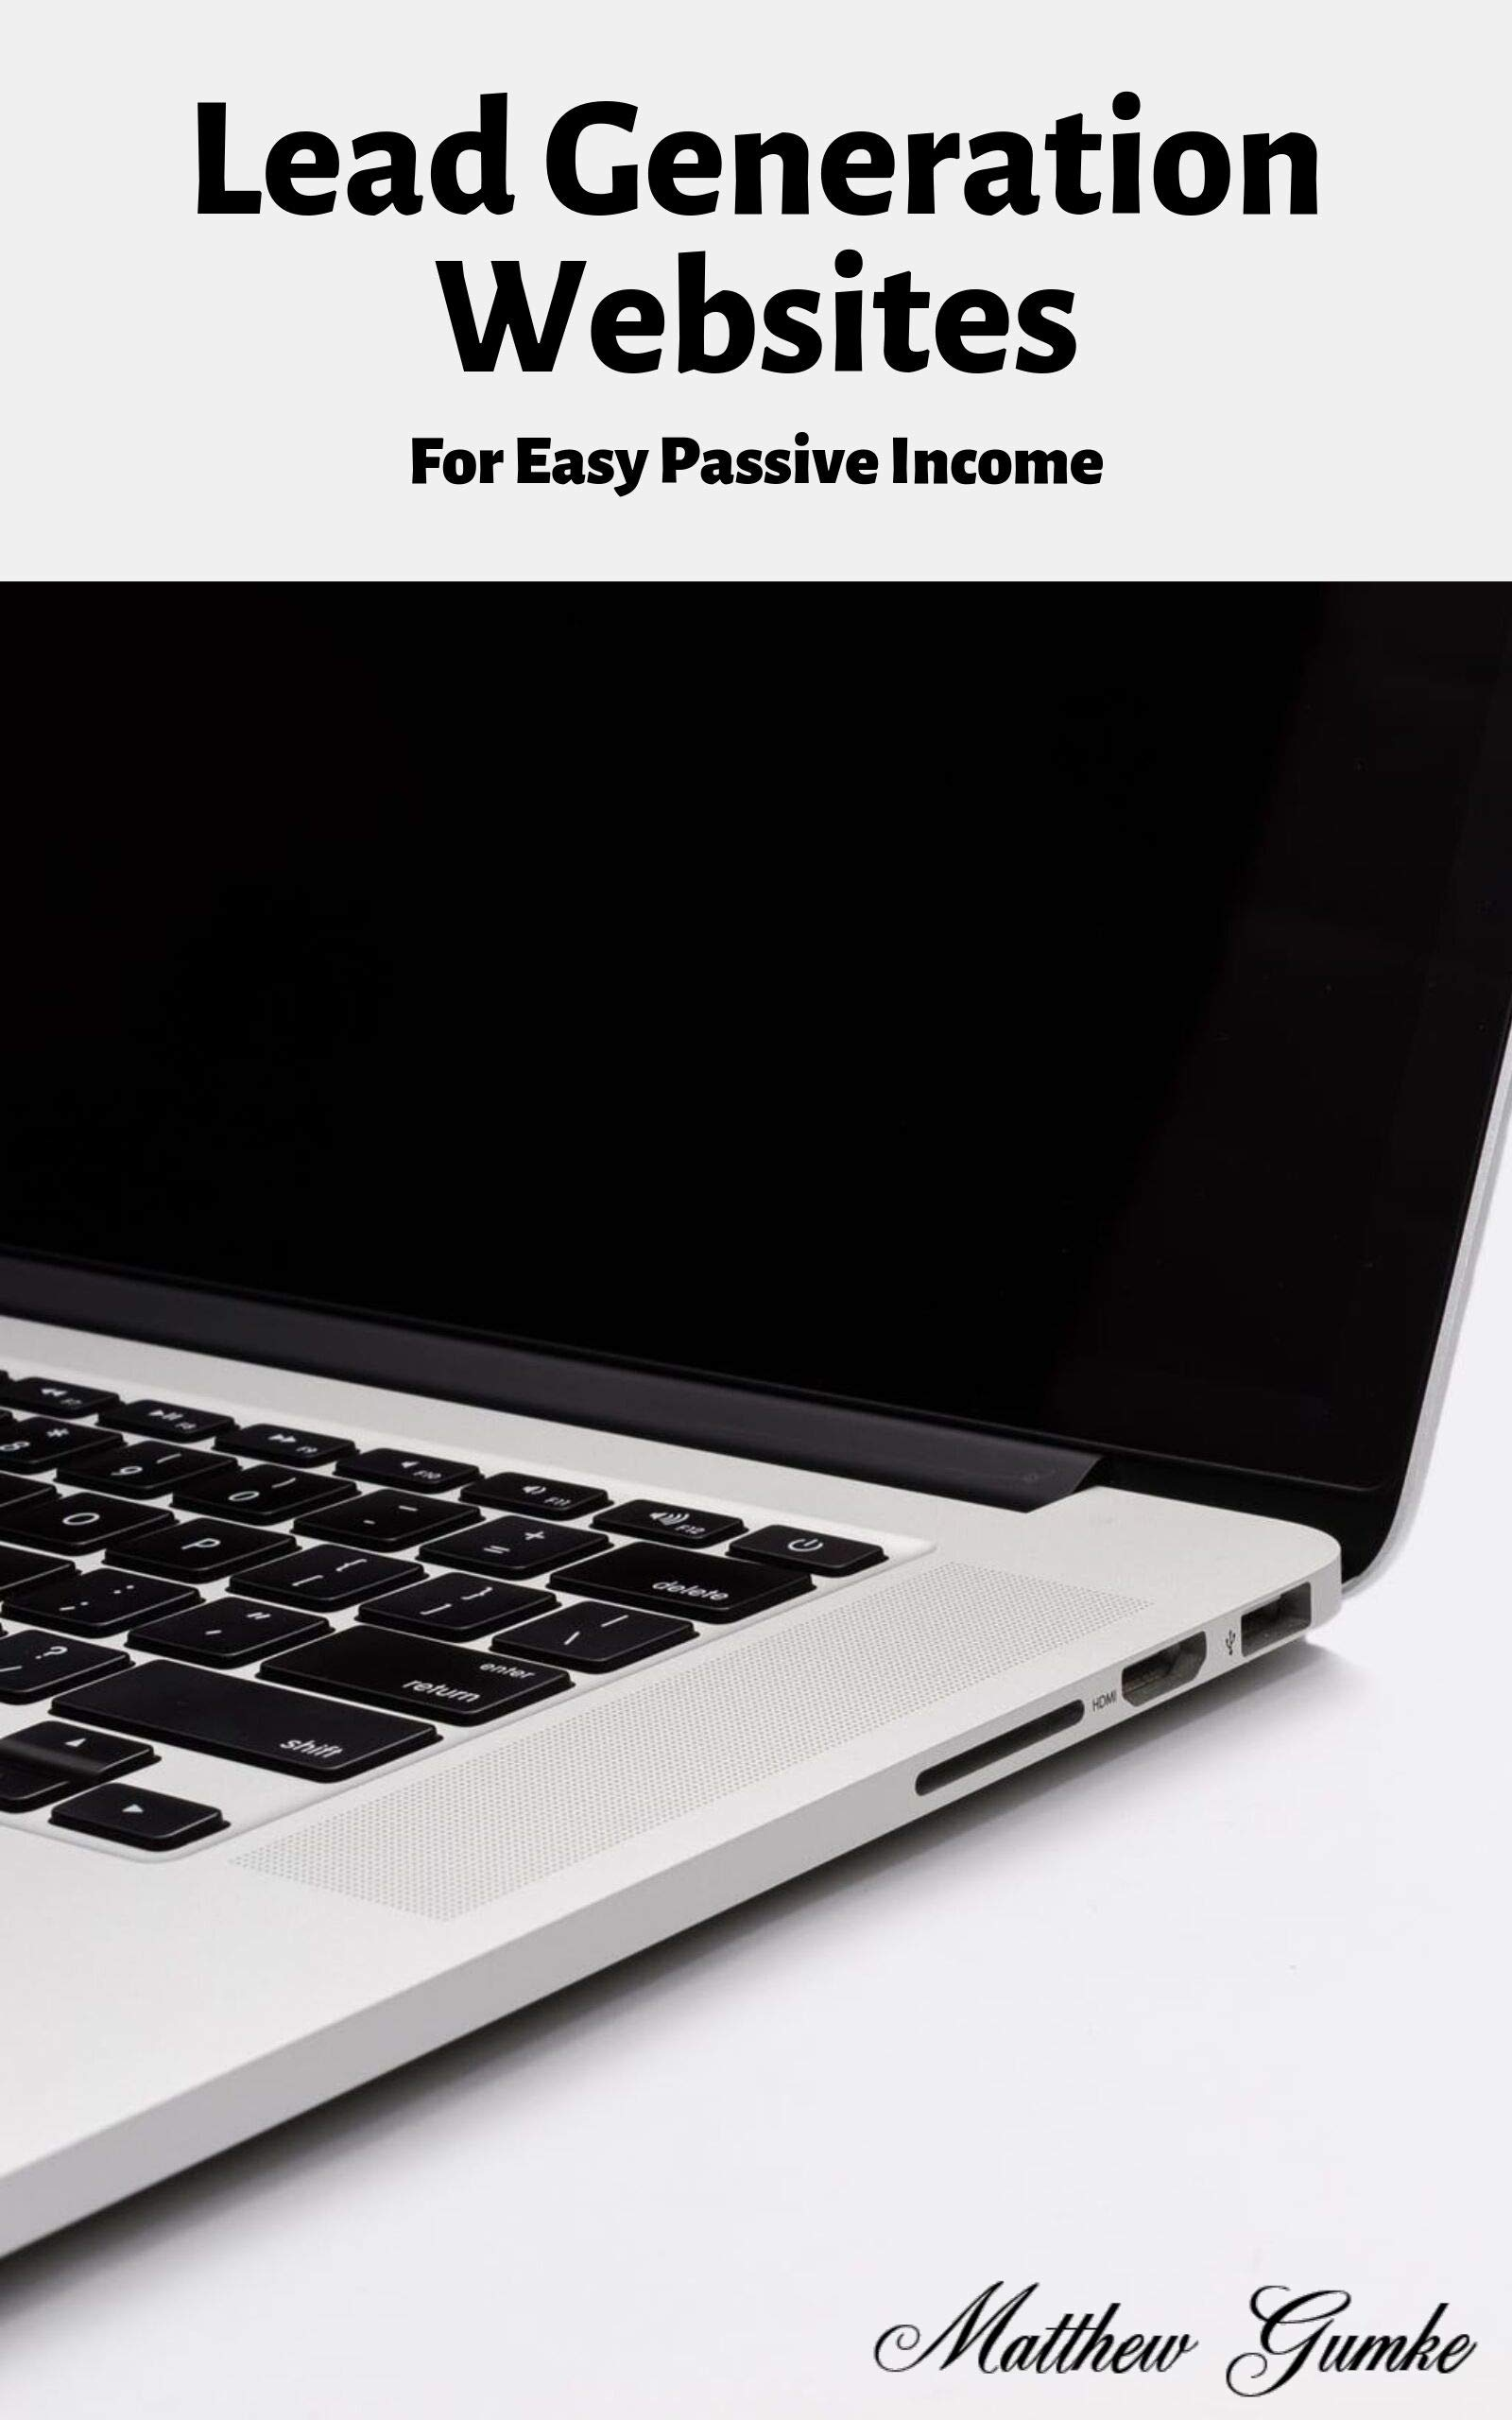 Lead Generation Websites: For Easy Passive Income